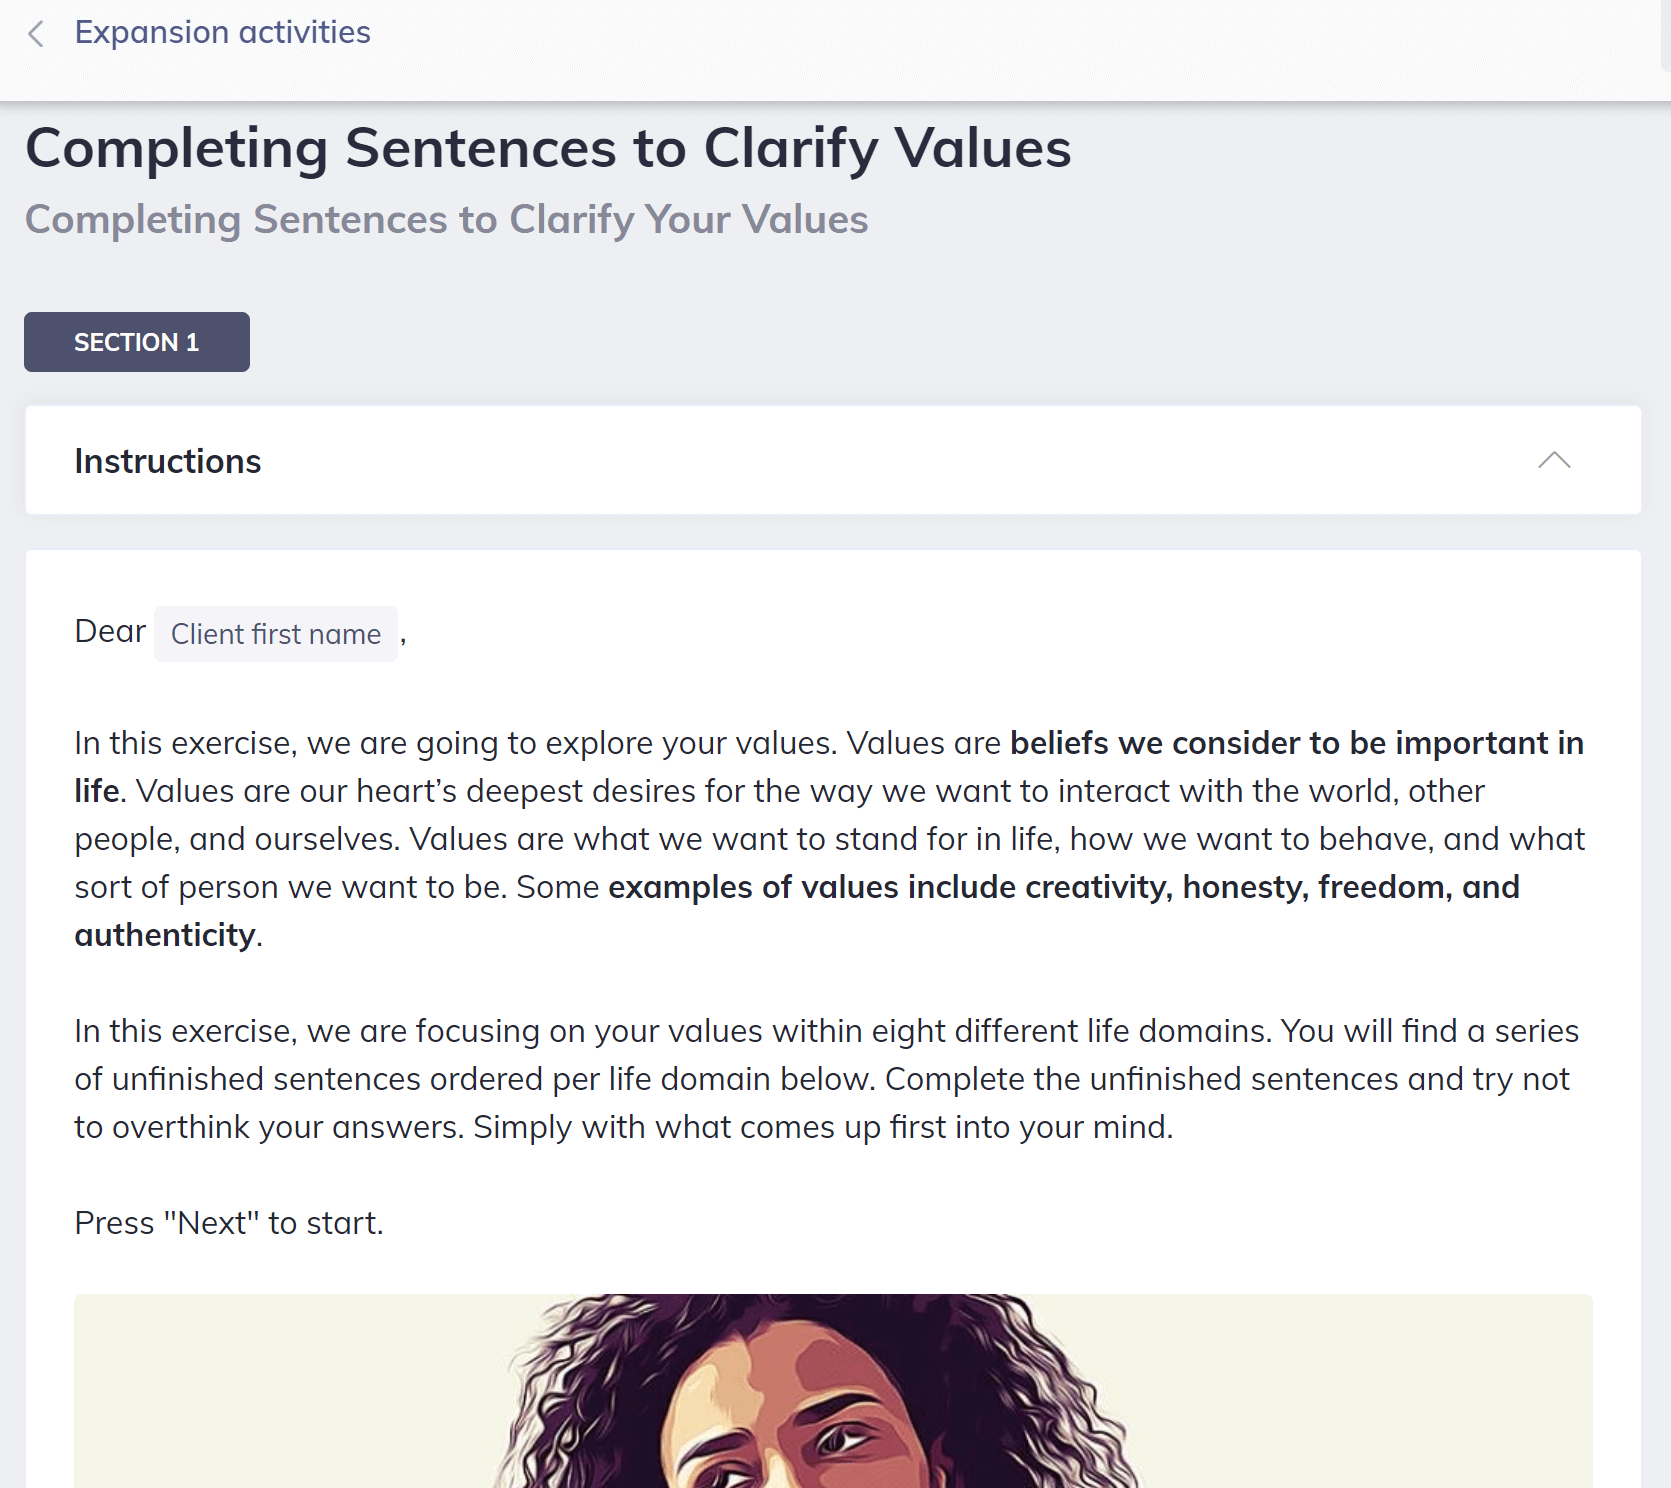 Completing Sentences to Clarify Values Confidence Coaching Tools